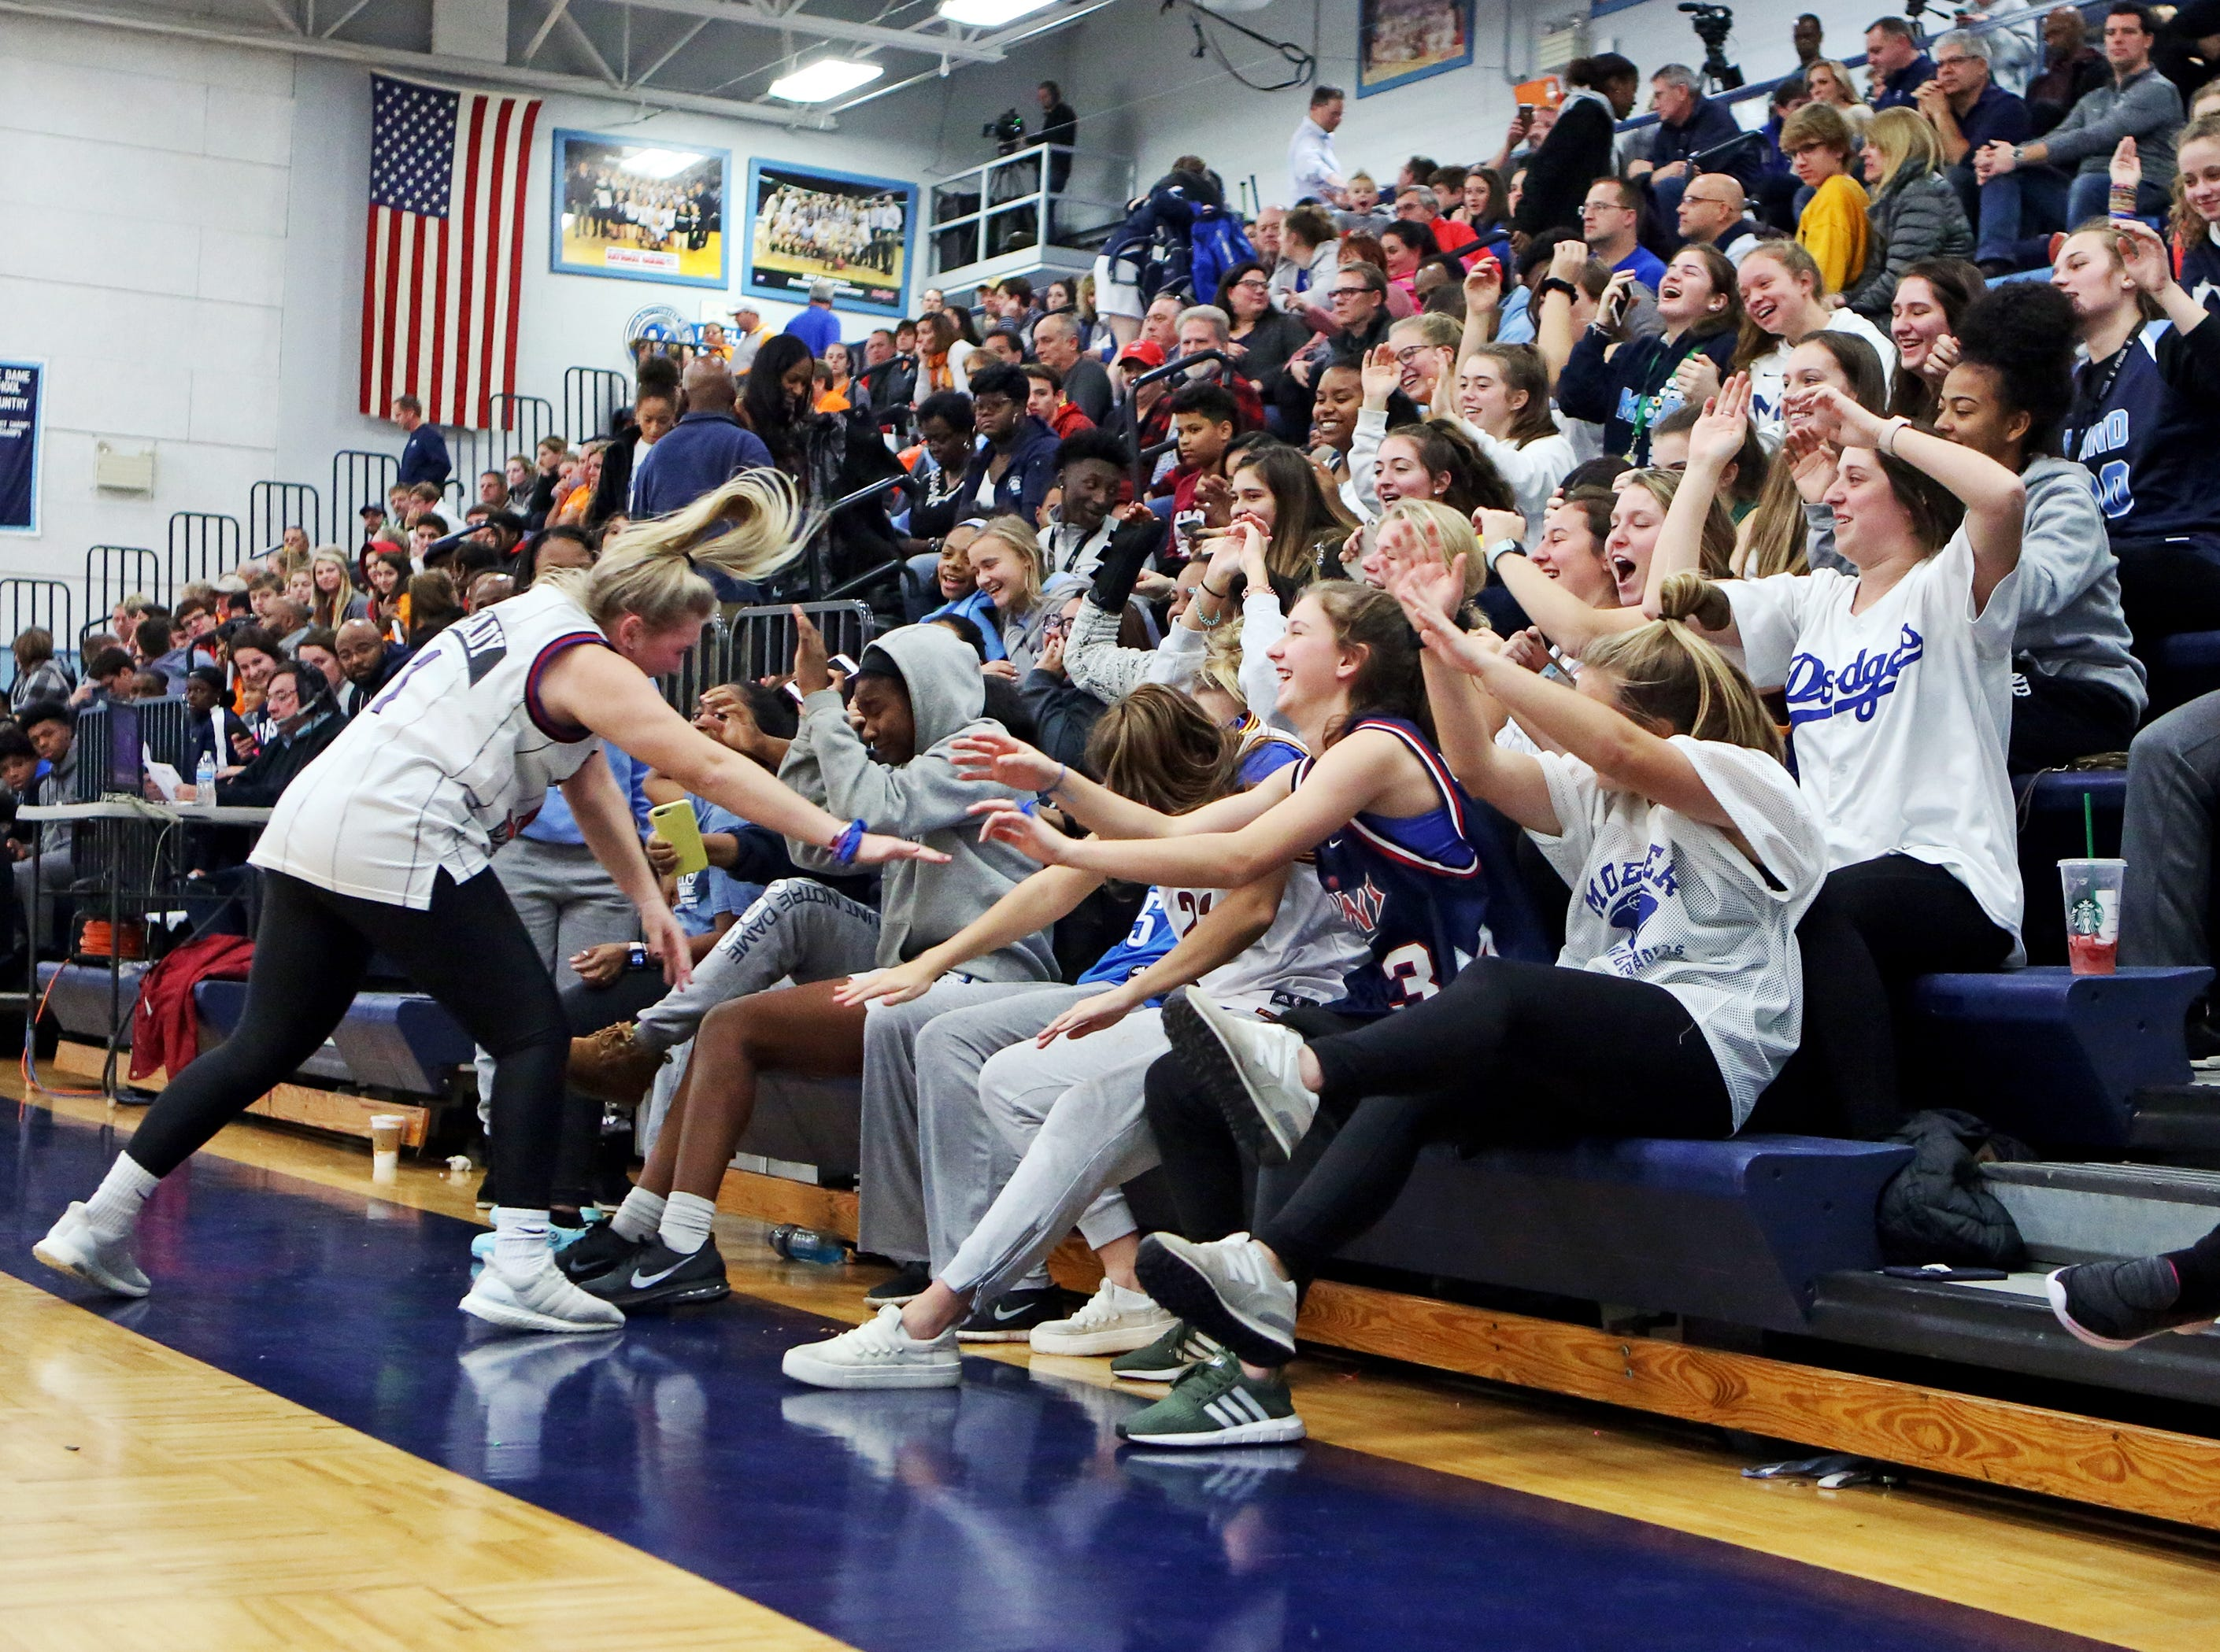 The MND student cheering section goes for a roller coaster ride. Mount Notre Dame defeated Mercy-McAuley 53-32.